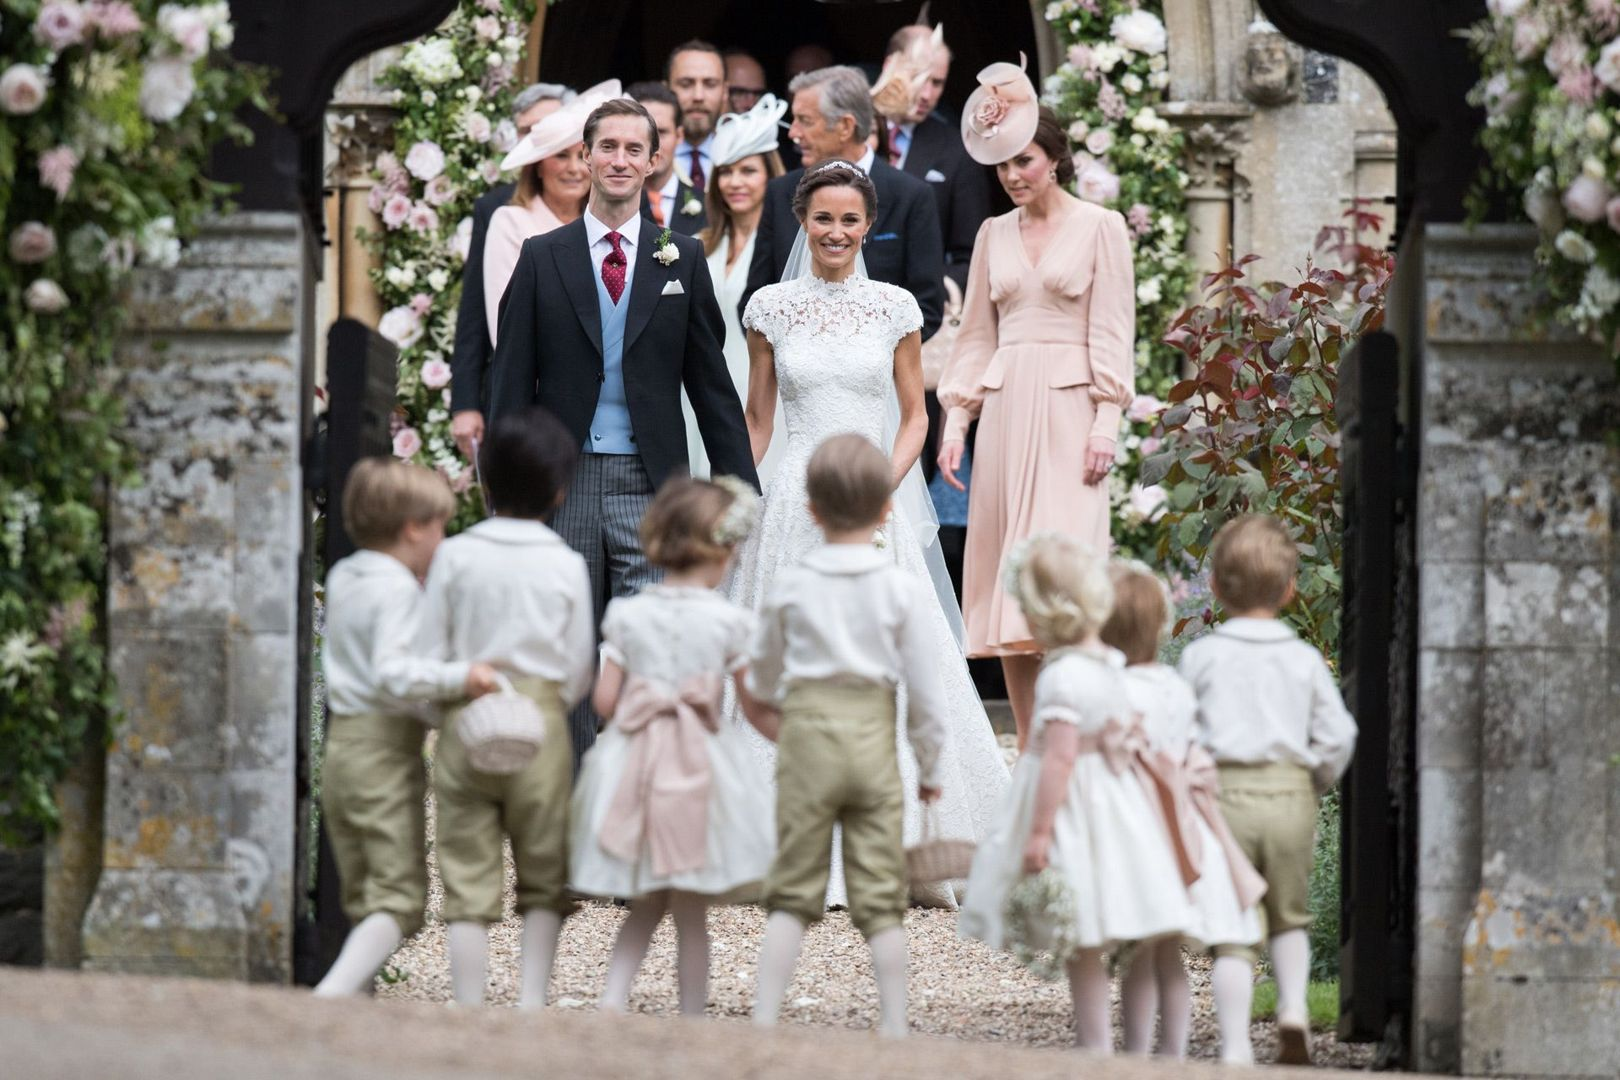 From the guests to the gown, all the wedding inspiration Pippa Middleton's big day: https://t.co/7UrCZC7Ing https://t.co/KL2No8iFvR